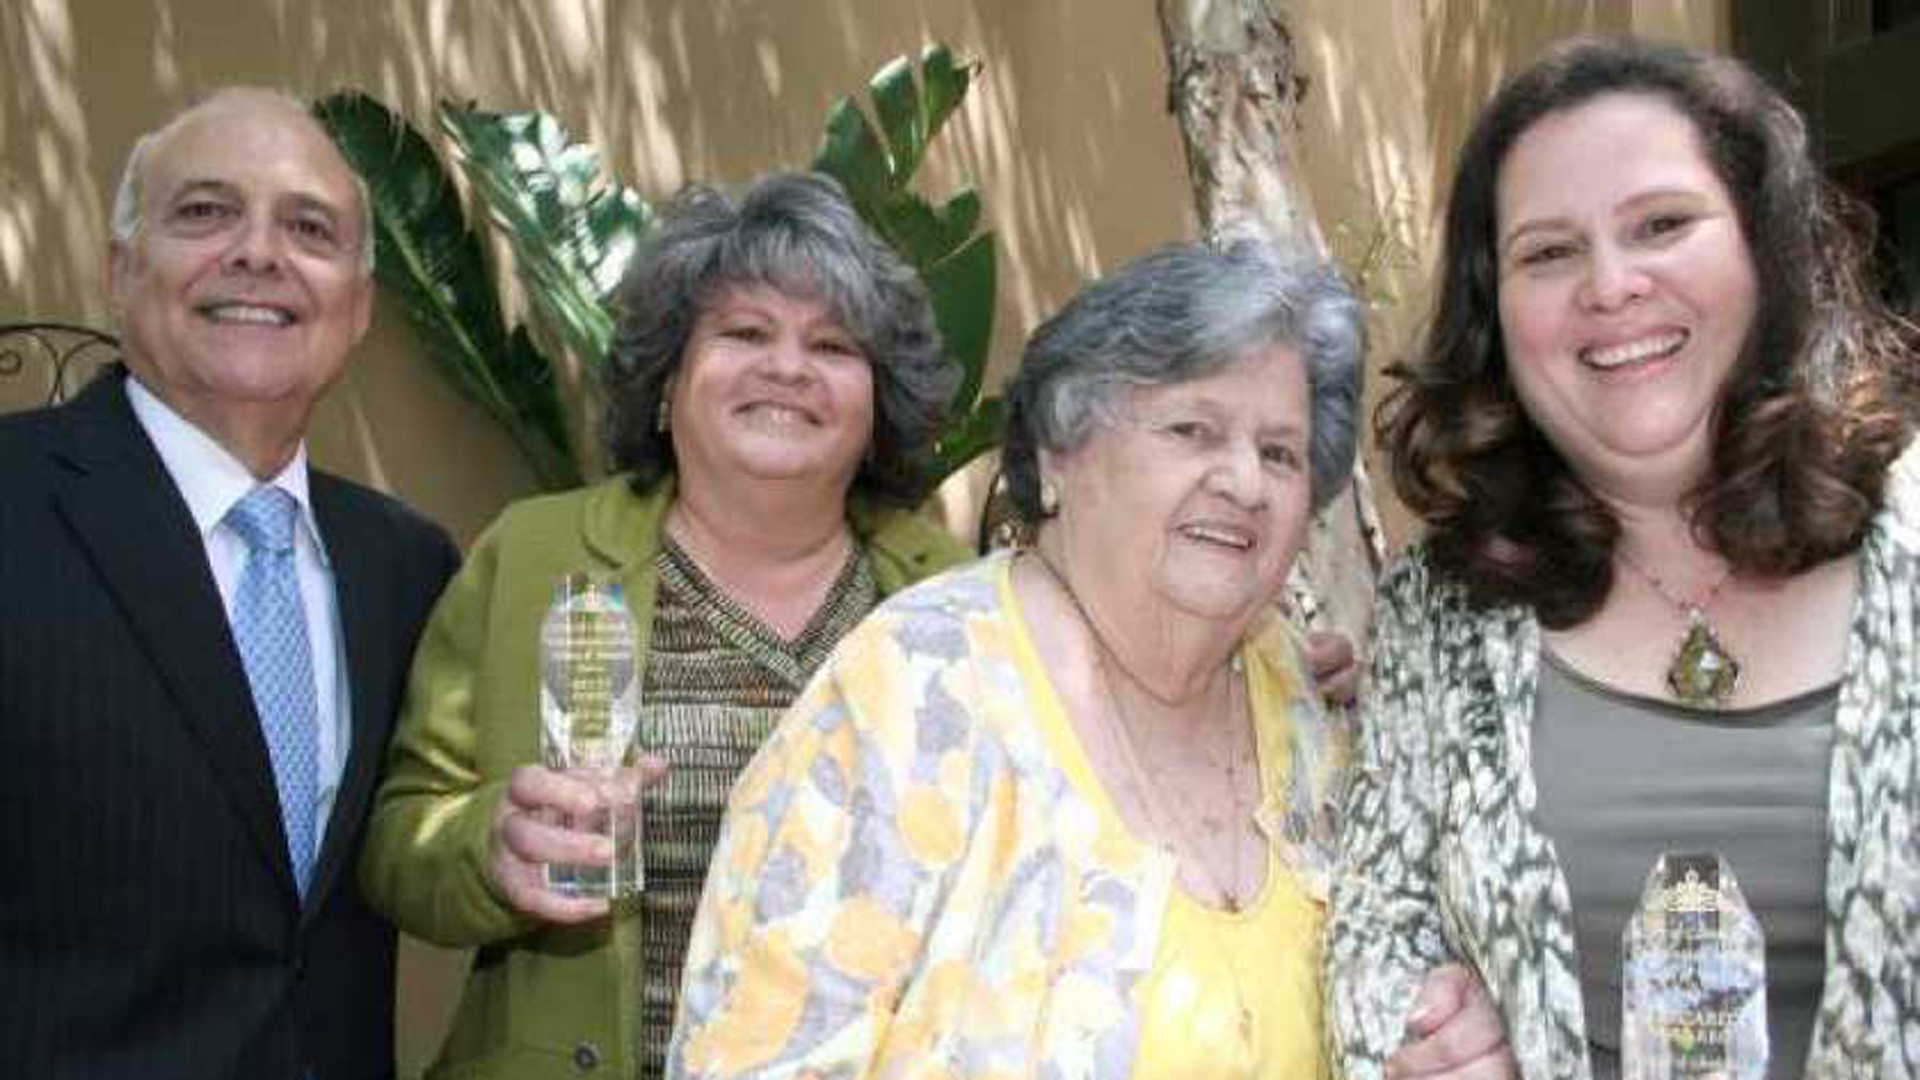 "Former Glendale Mayor Frank Quintero poses with Betty Porto, mother Rosa Porto and Margarita Navarro during an awards luncheon in 2012. Rosa Porto was honored as a ""Jewel of Glendale"" for her service to the community. (Credit: Los Angeles Times)"